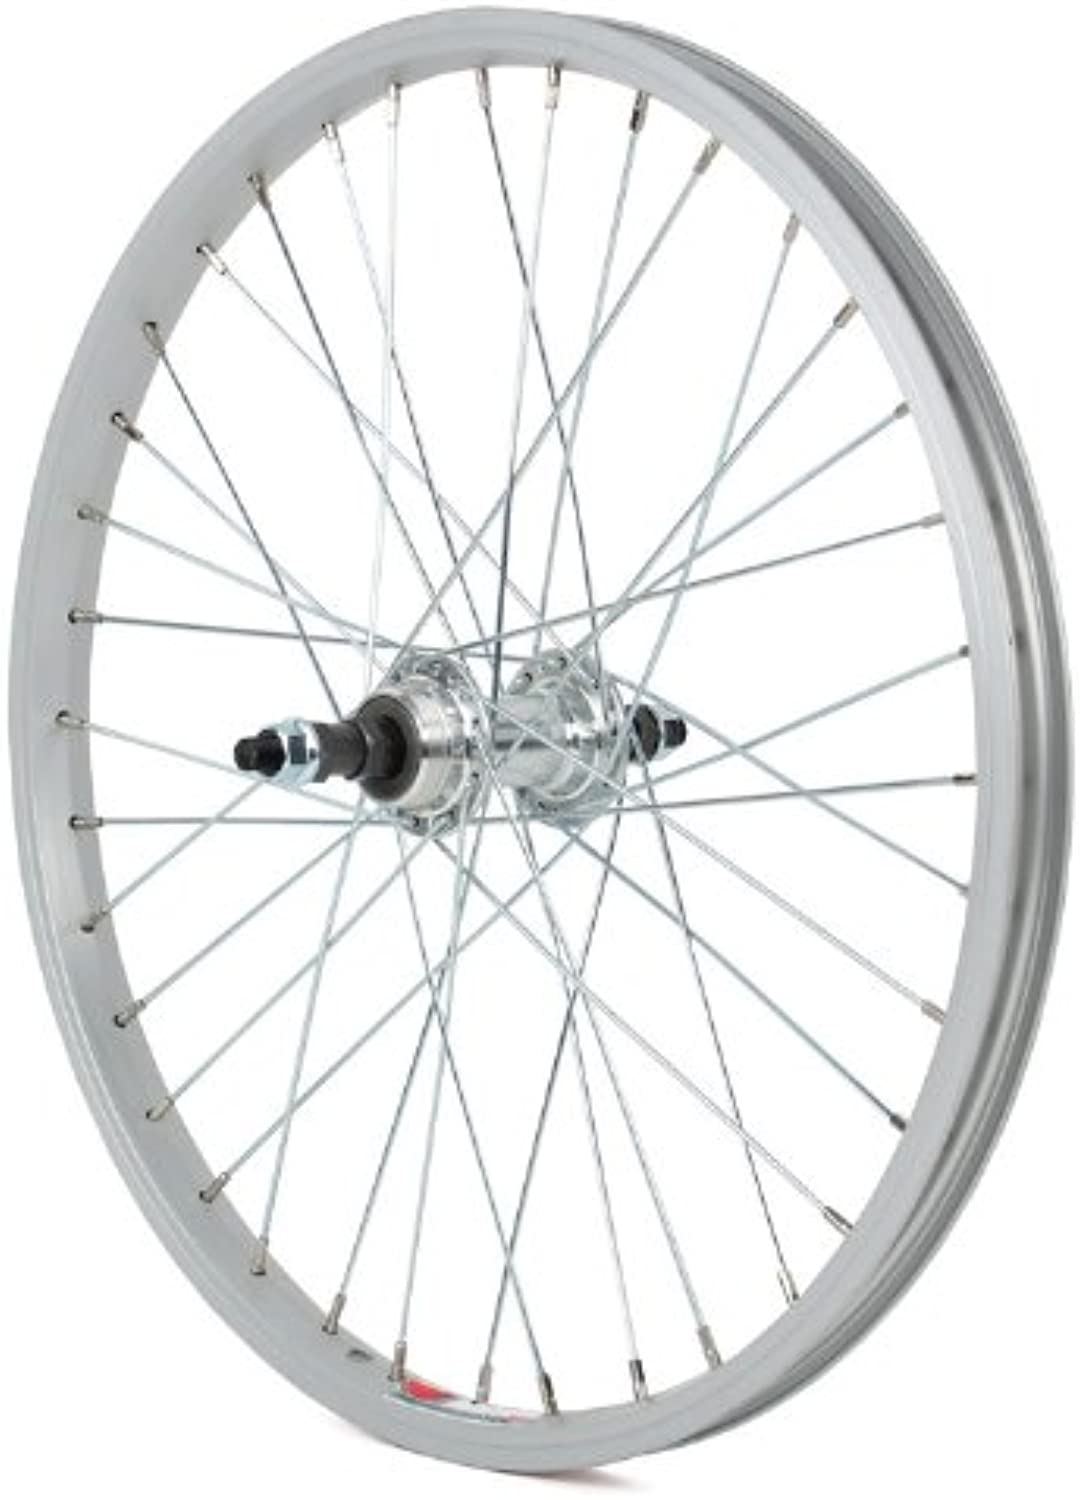 Sta Tru RWS2015AF Rear ST1 KT 8 Speed Tuned Wheels with 3 8Inch Axle, 20mm x 1.5Inch, Nutted Silver